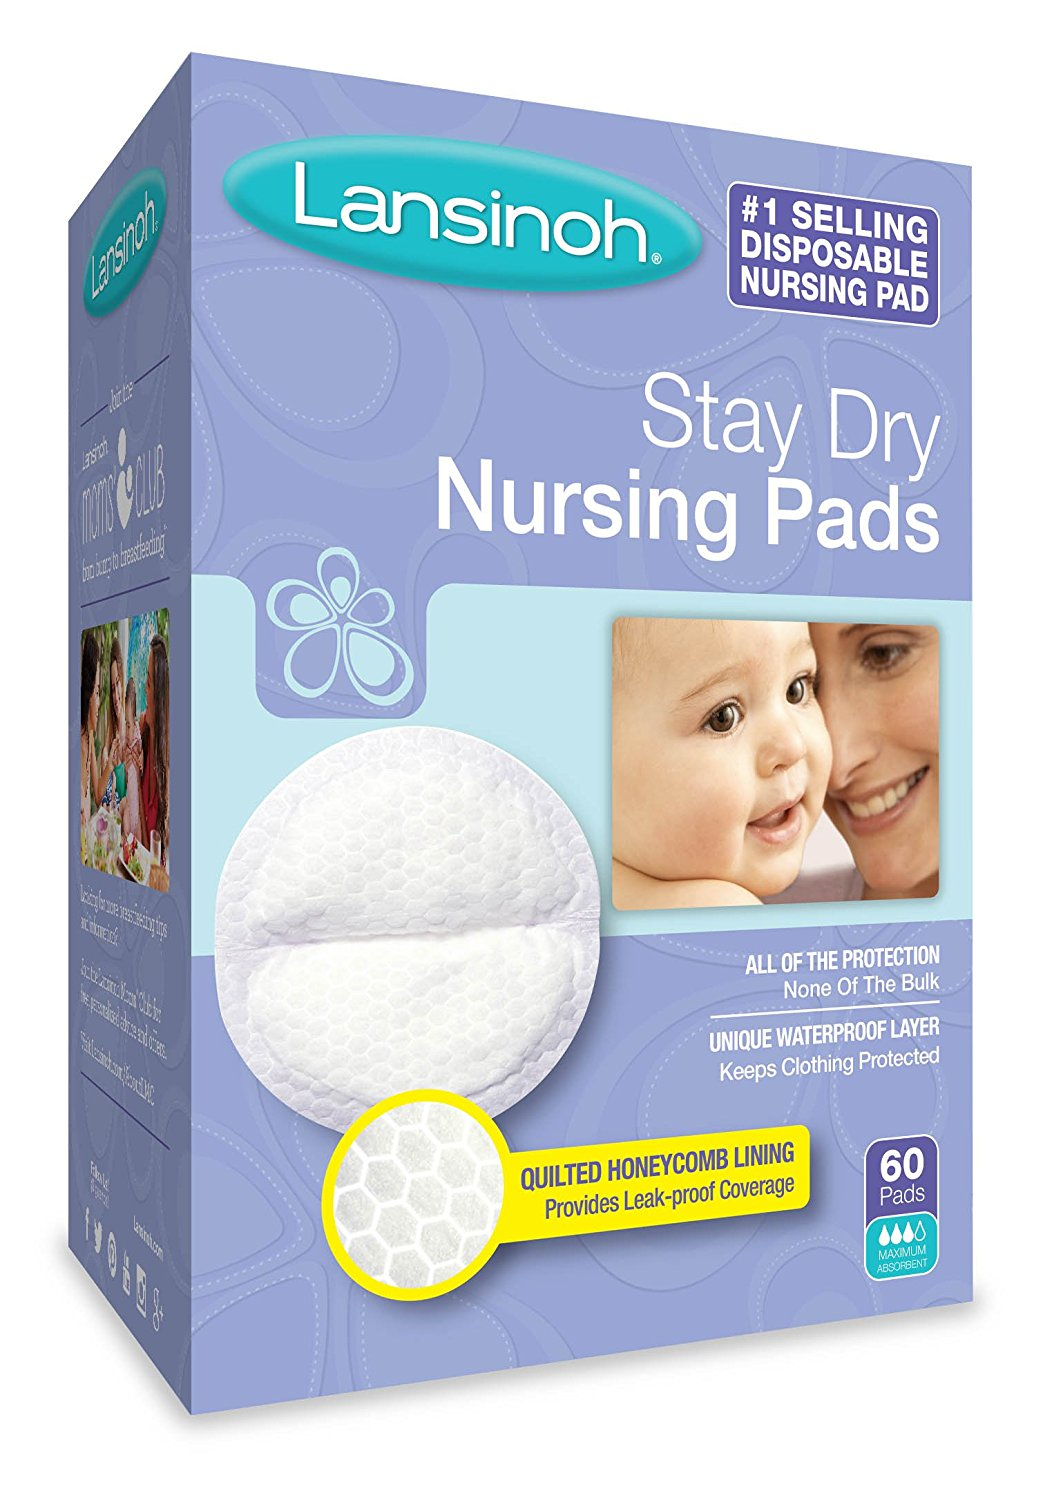 Stay Dry Disposable Nursing Pads, 60 Count Boxes (Pack of 4), USA, Brand Lansinoh by Lansinoh